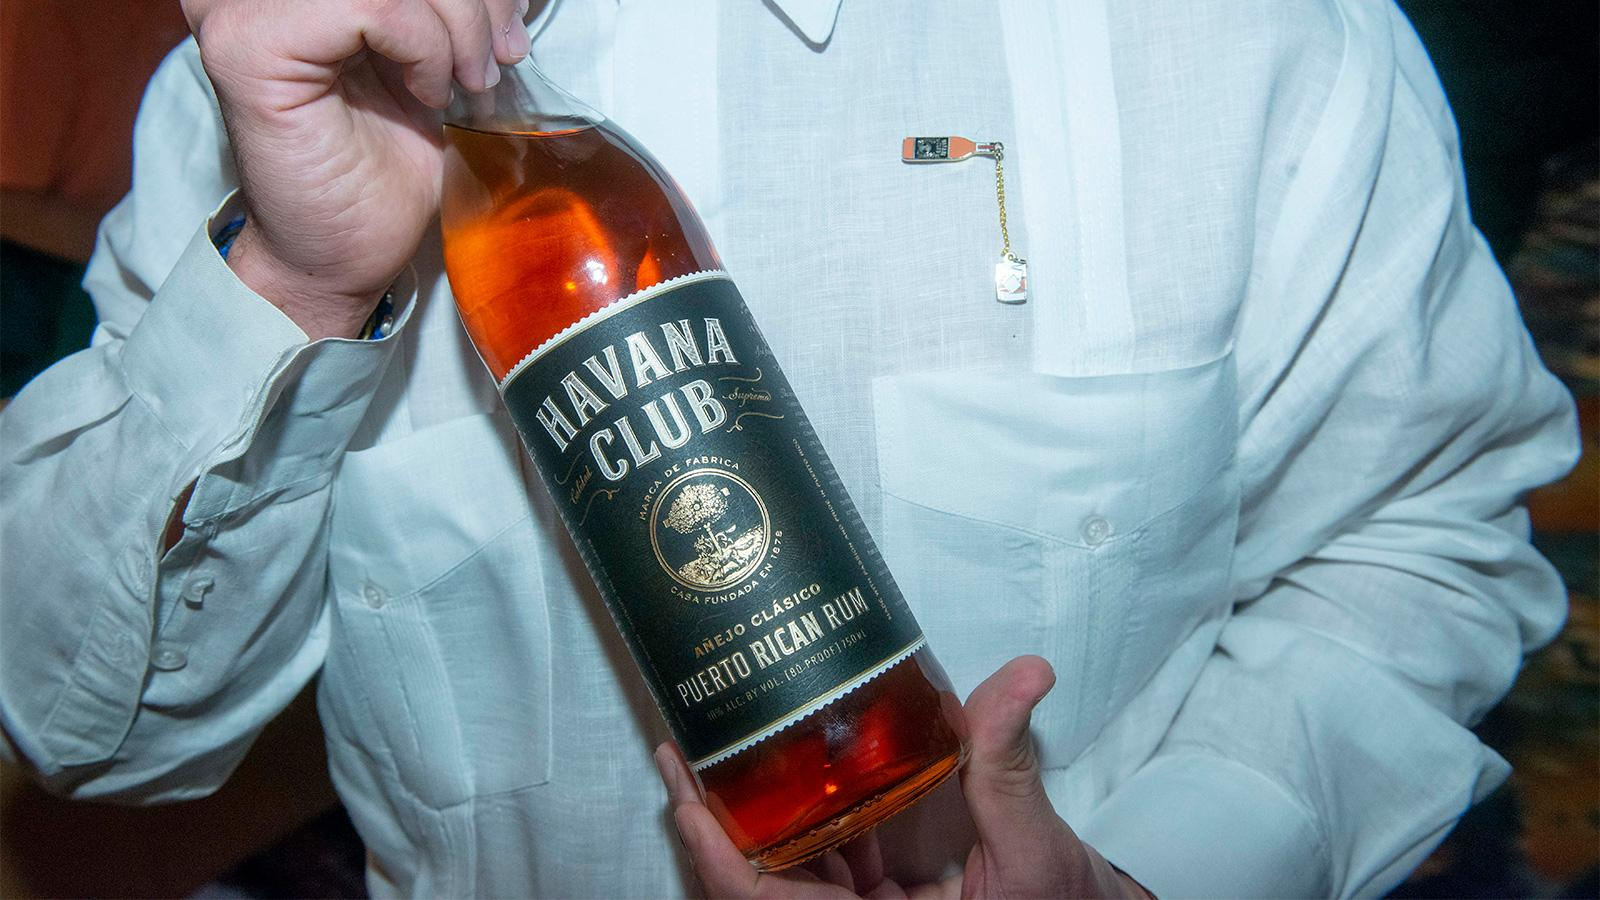 Havana Club Añejo Clasico was among the fine rums tasted during the seminar.